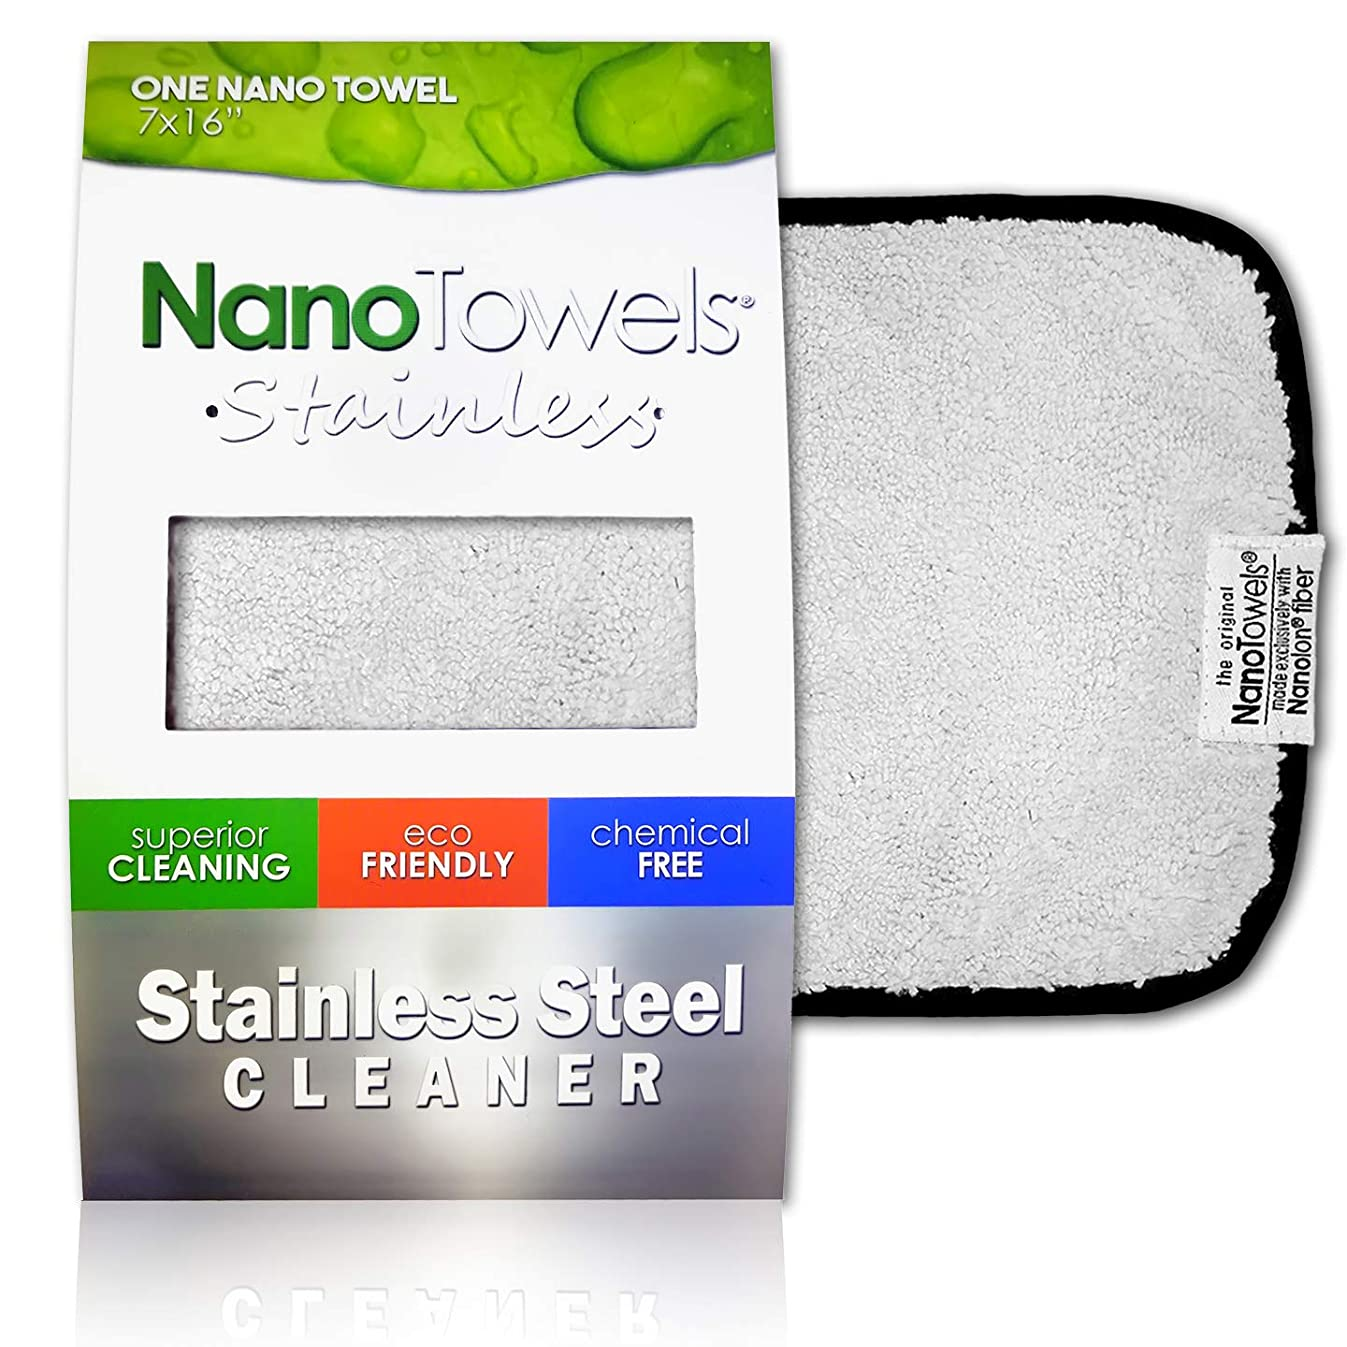 Nano Towels Stainless Steel Cleaner | The Amazing Chemical Free Stainless Steel Cleaning Reusable Wipe Cloth | Kid & Pet Safe | 7x16